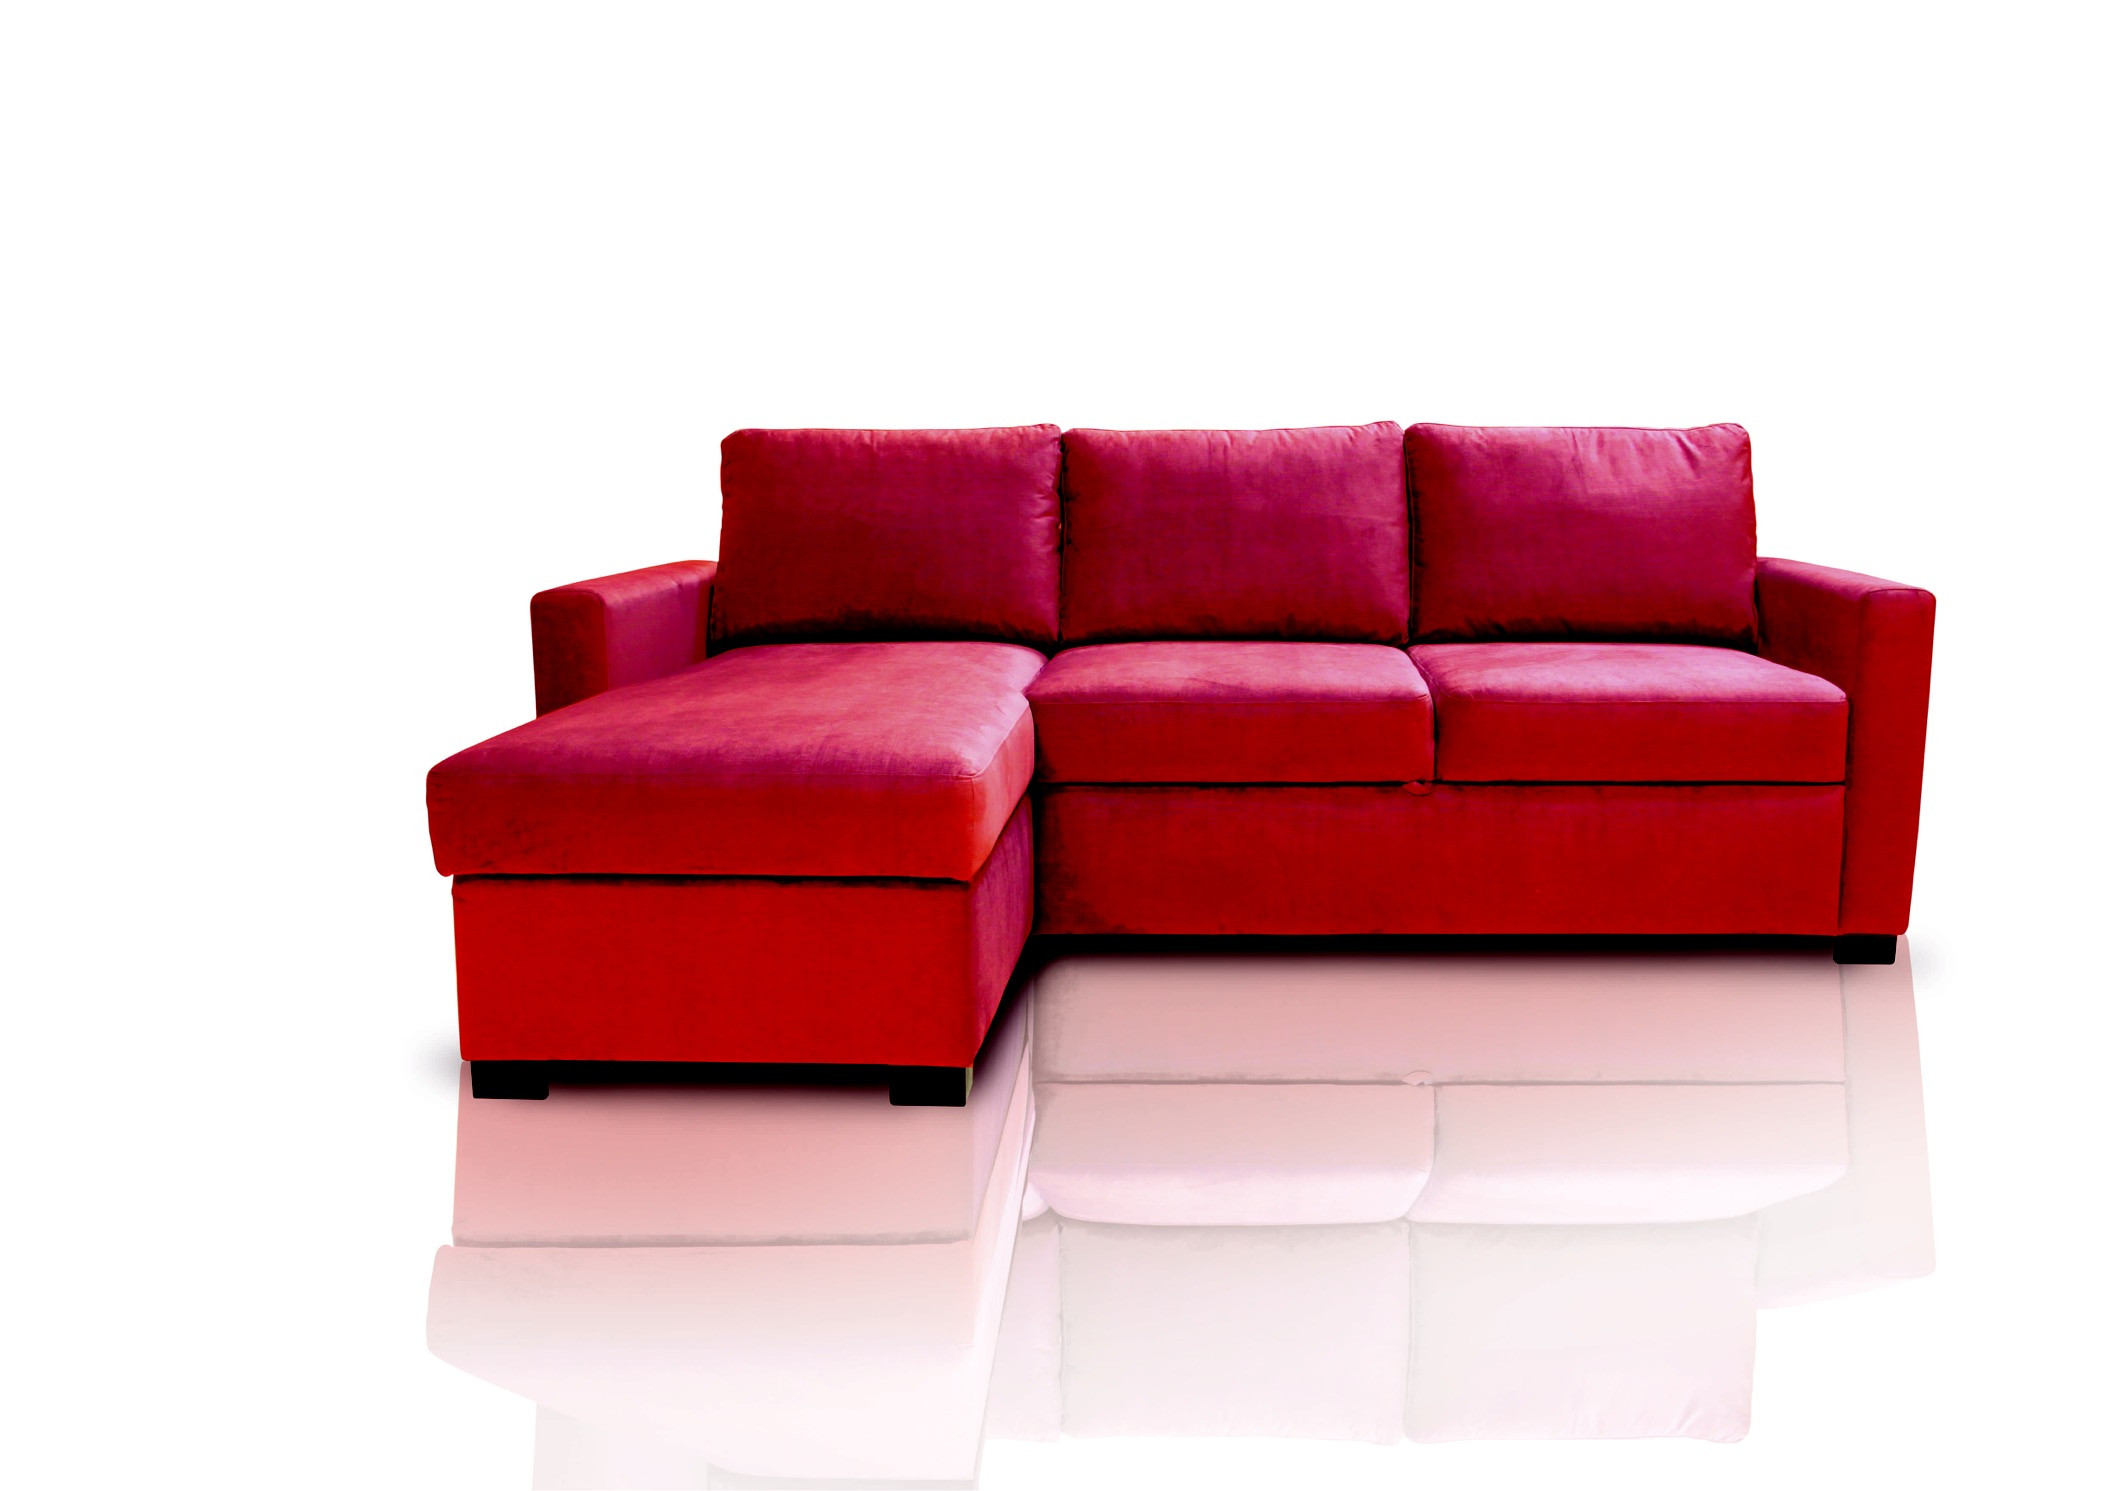 Best ideas about Red Sofa Beds . Save or Pin red sofa bed Glasgow West End Now.